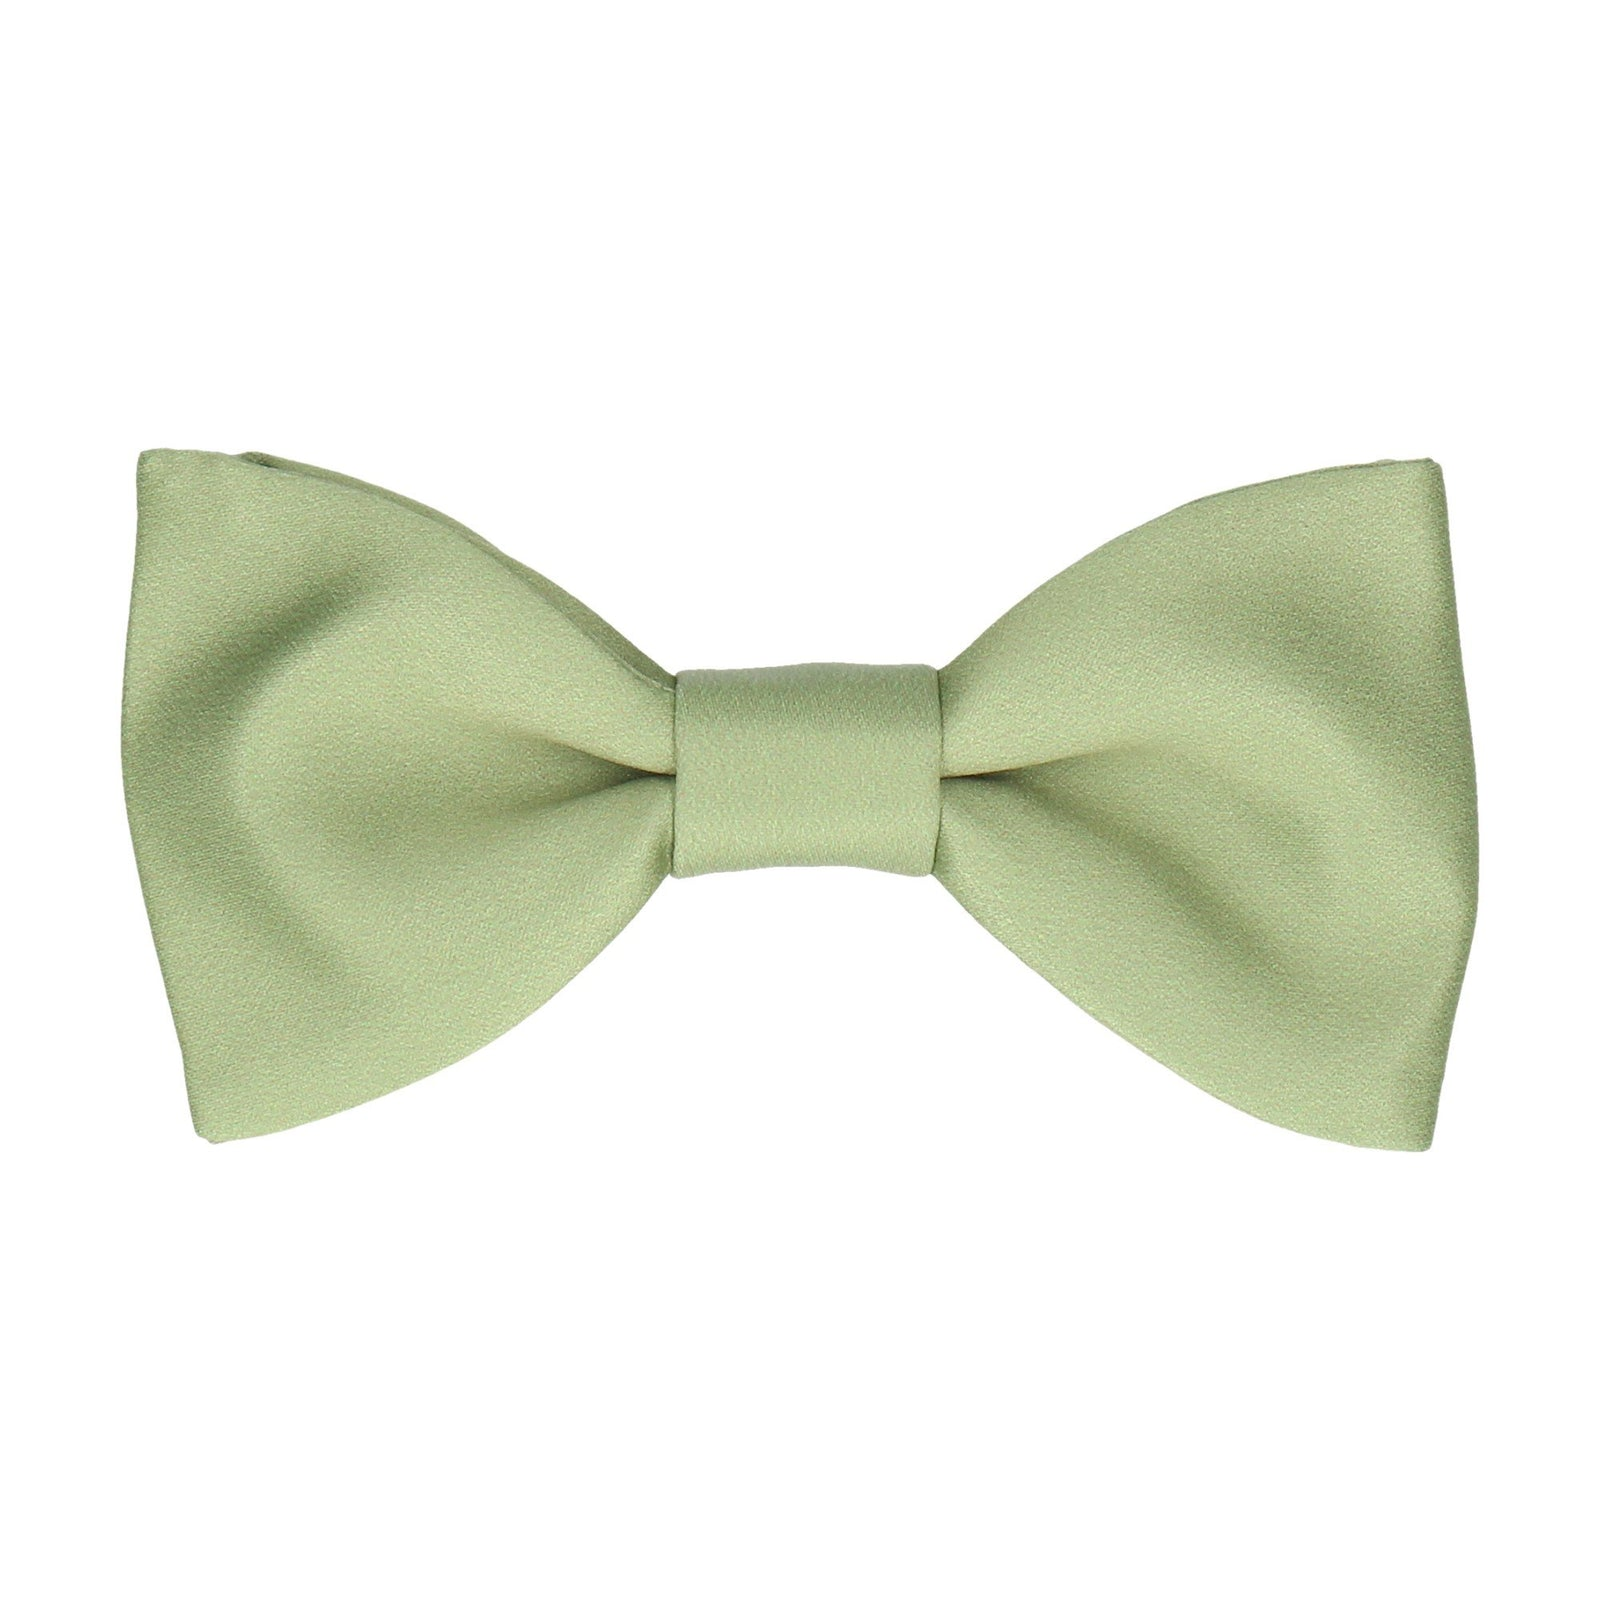 Plain Solid Celadon Green Bow Tie